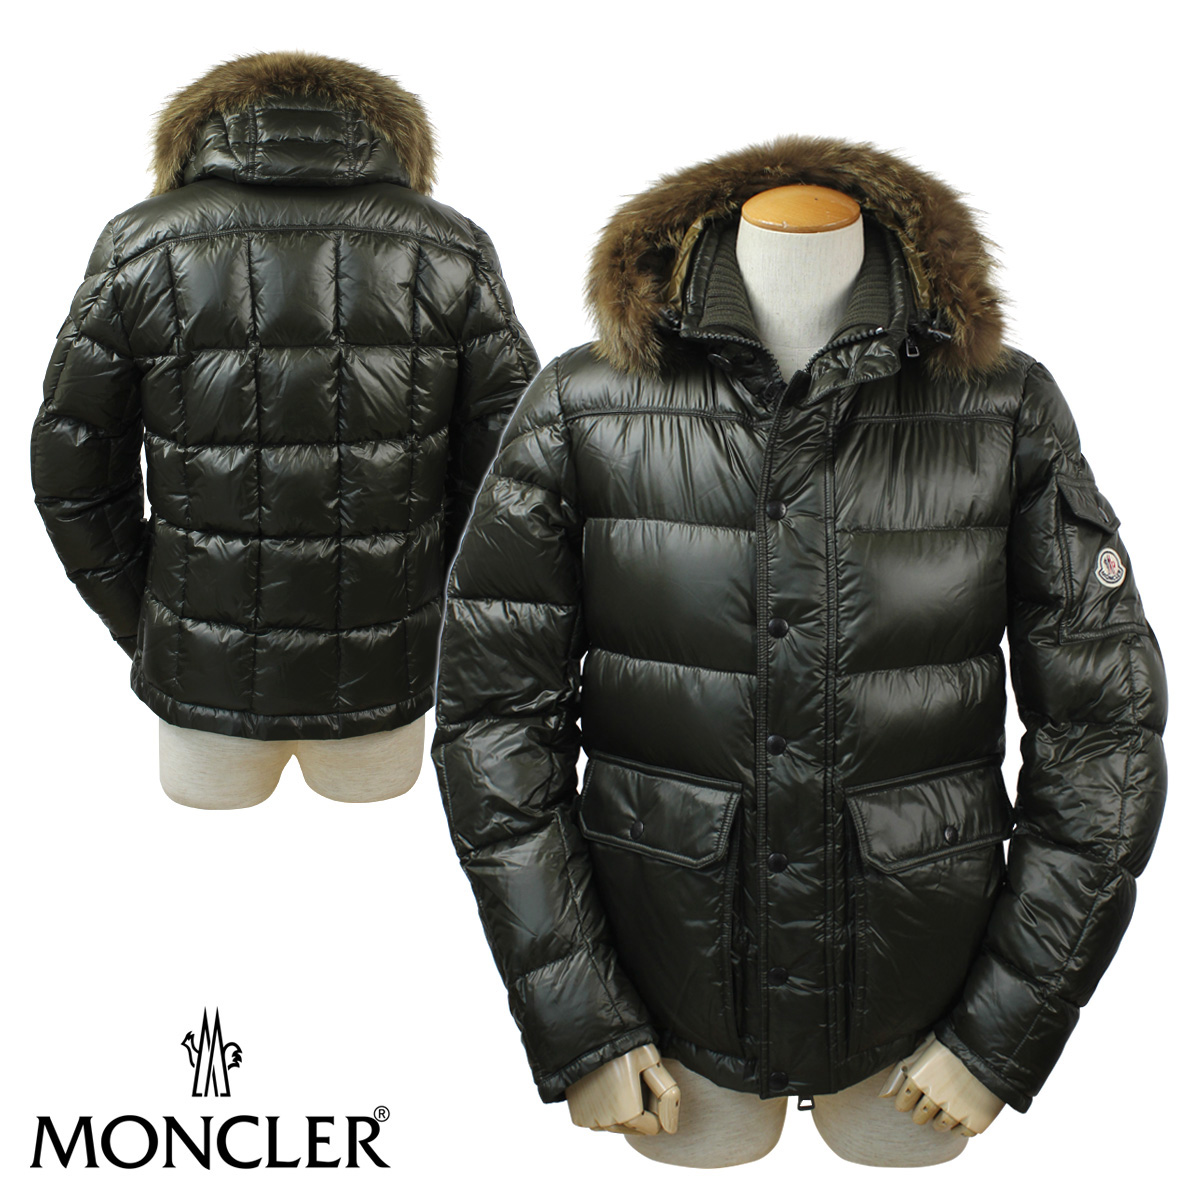 f6a6075c3101 ALLSPORTS  Hubert HUBERT JACKET, MONCLER MONCLER men s down jacket  11   4  new in stock    Rakuten Global Market